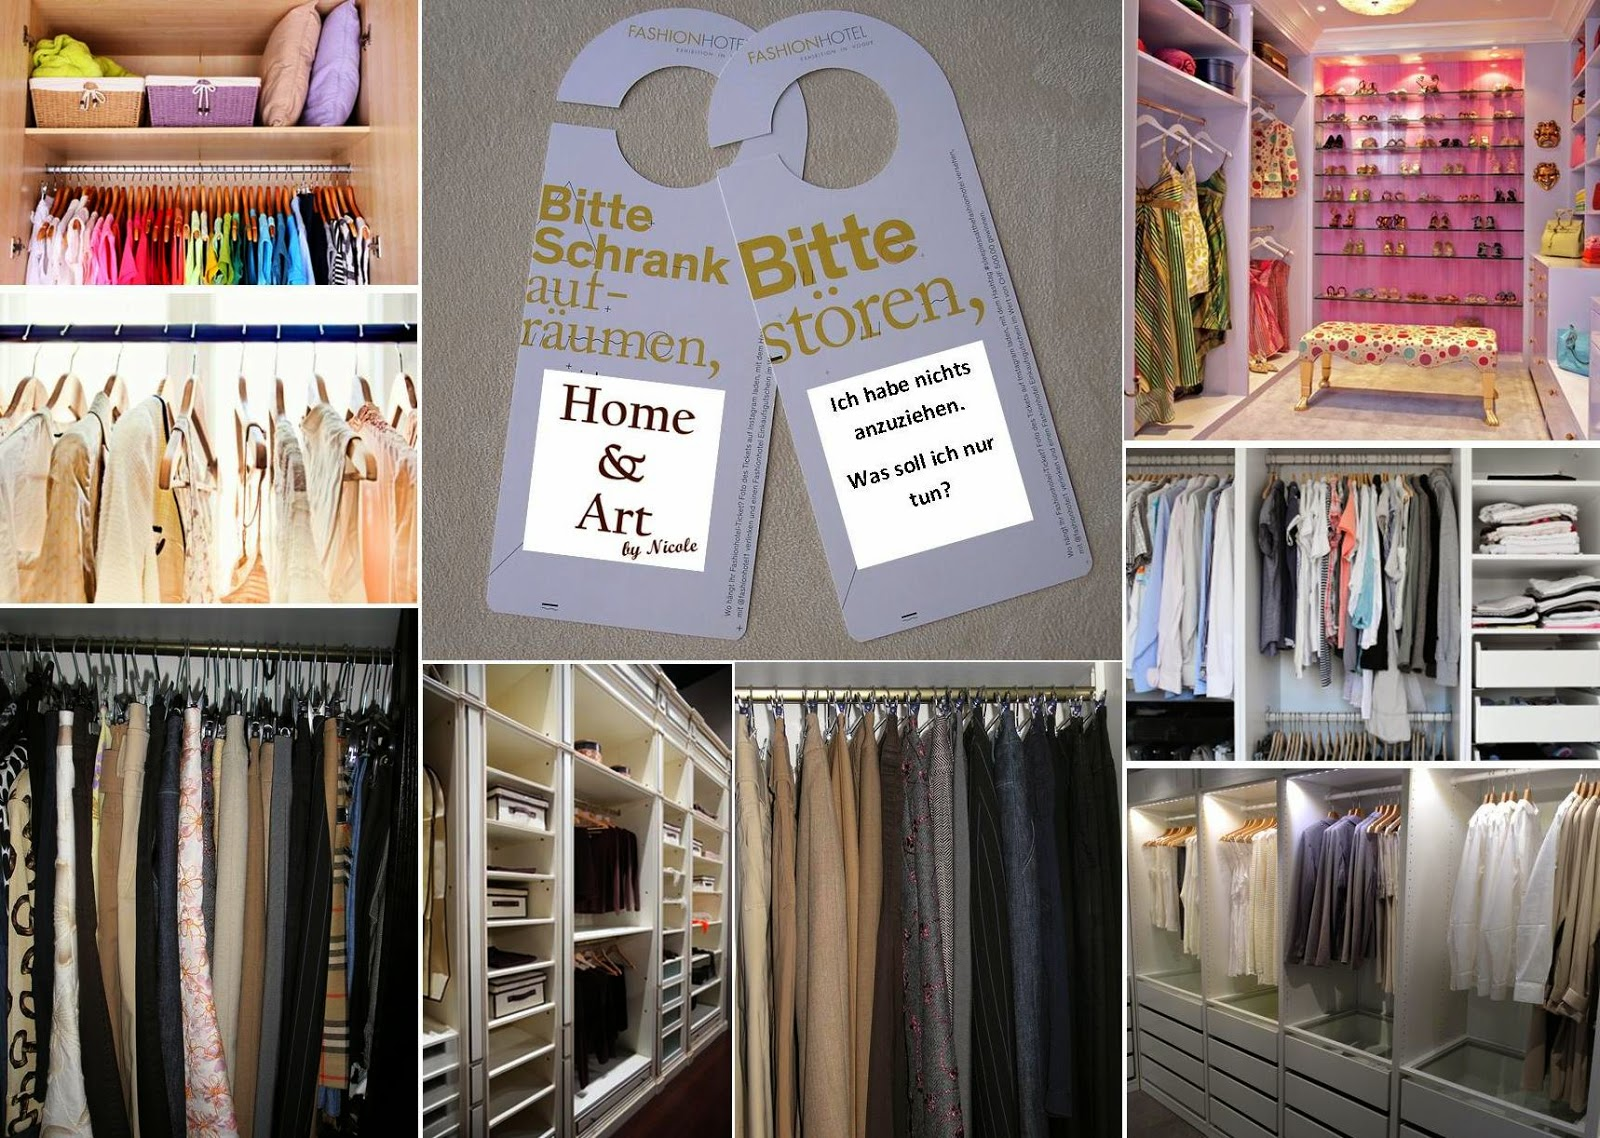 Wardrobe Organizer Home and Art